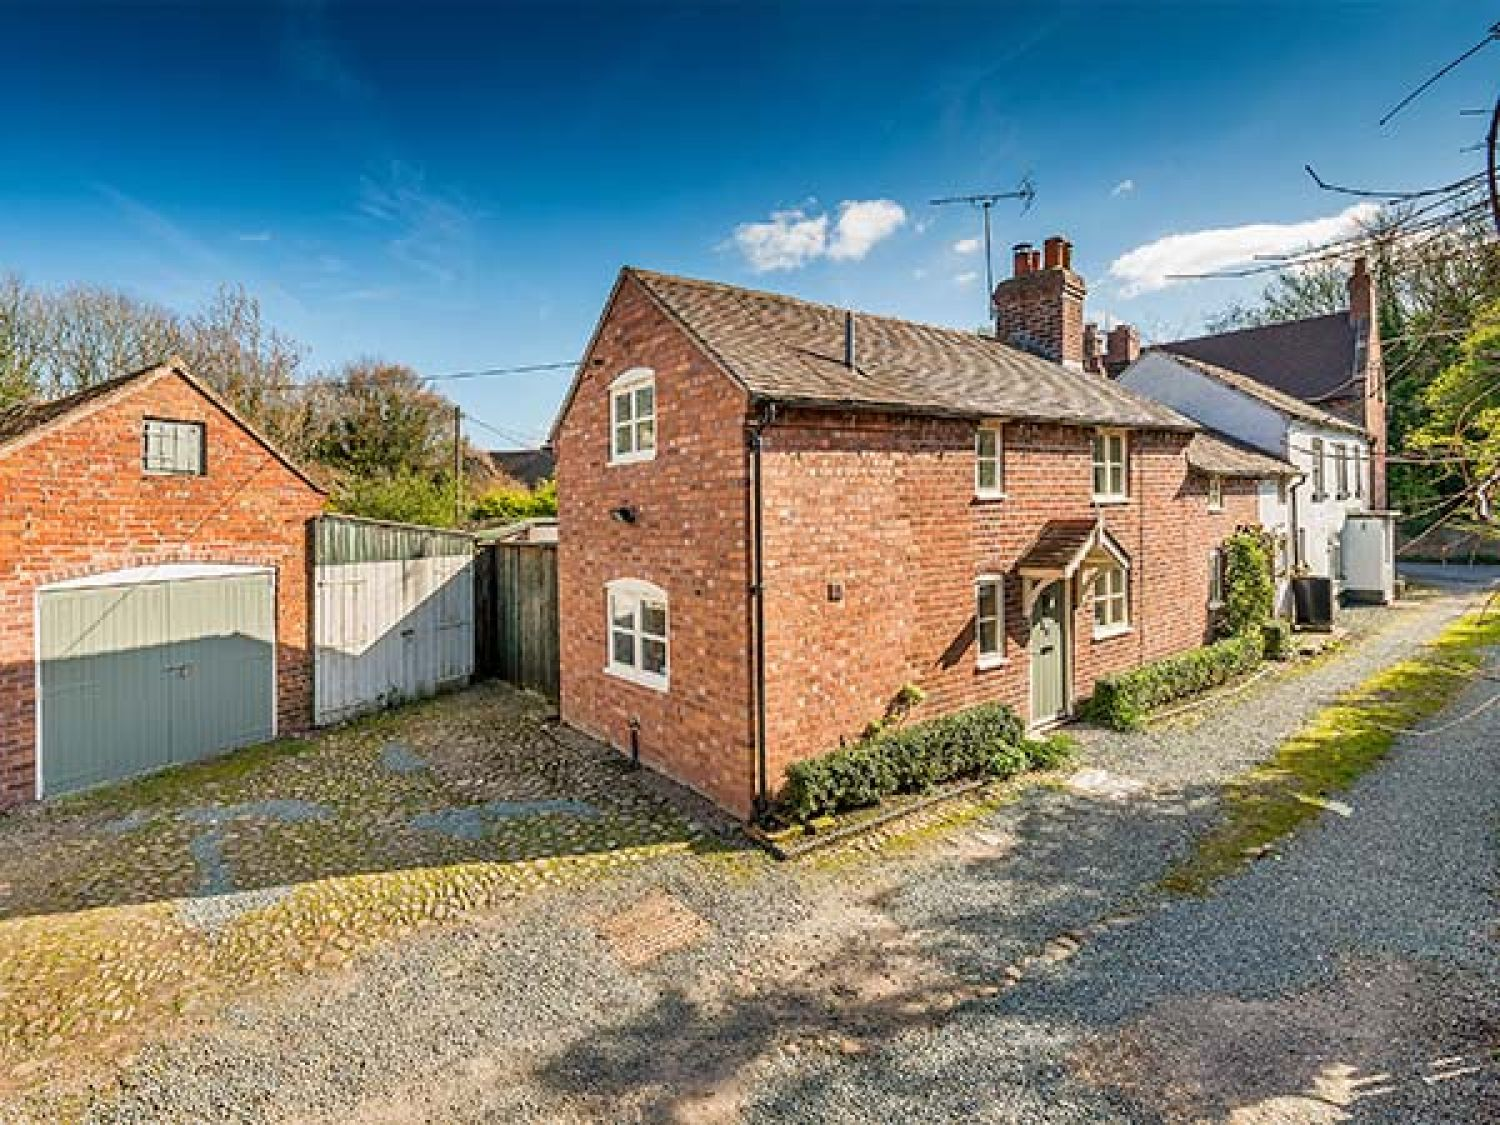 Borrowers Cottage - Shropshire - 951416 - photo 1